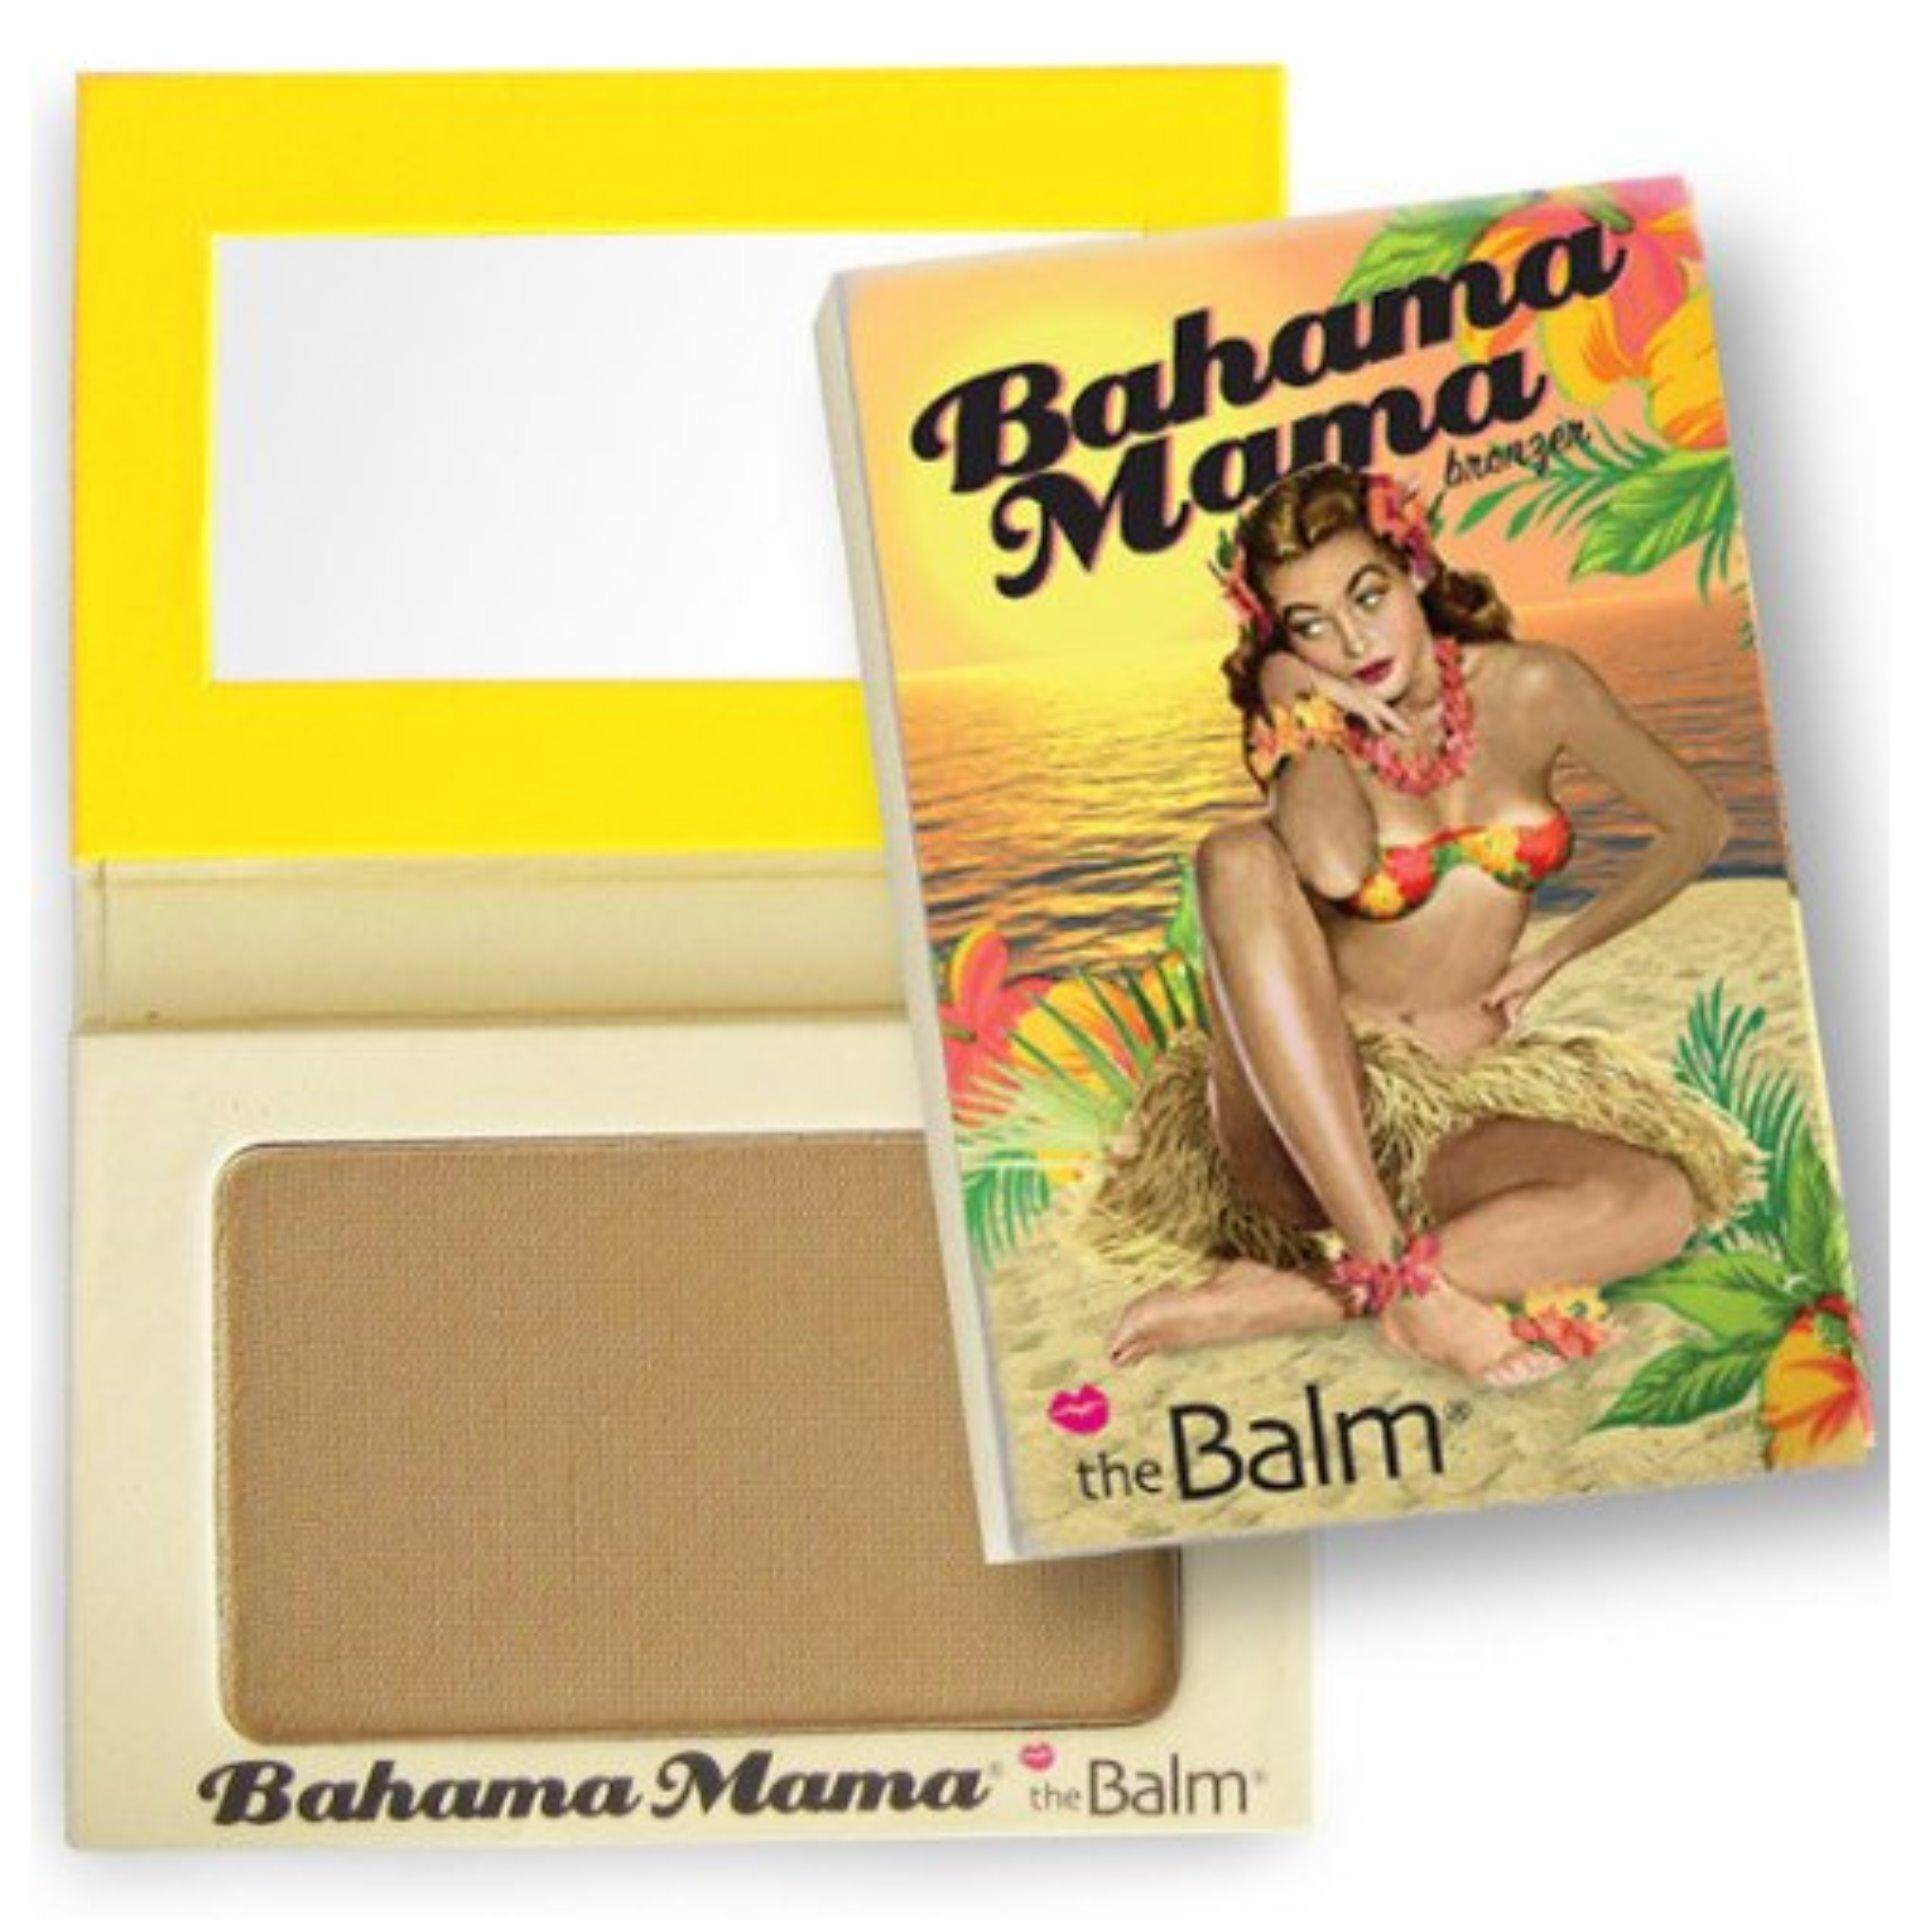 The Balm Bahama Mama Bronzer By Sofia Beauty.